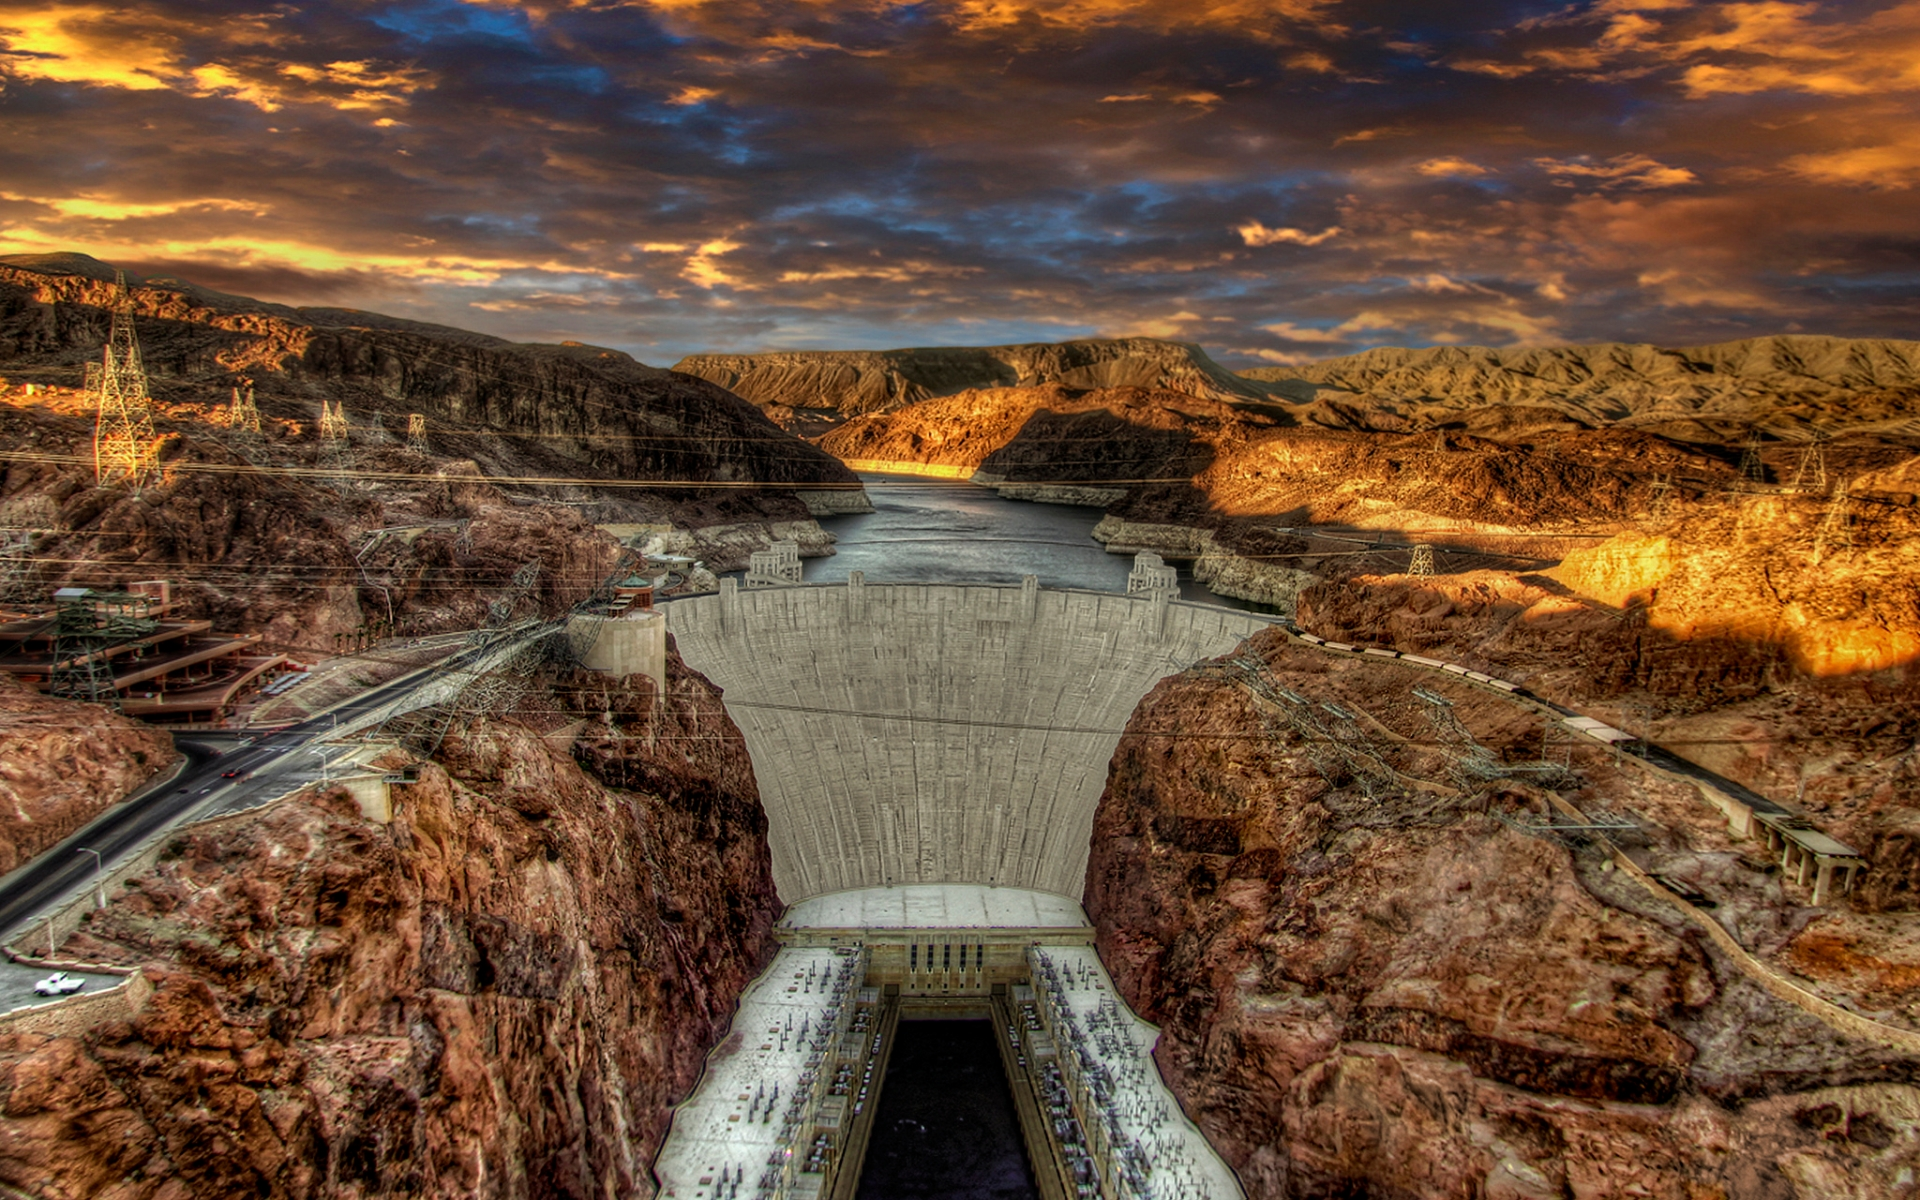 Best 44 Hoover Dam Wallpaper on HipWallpaper God Gundam 1920x1200